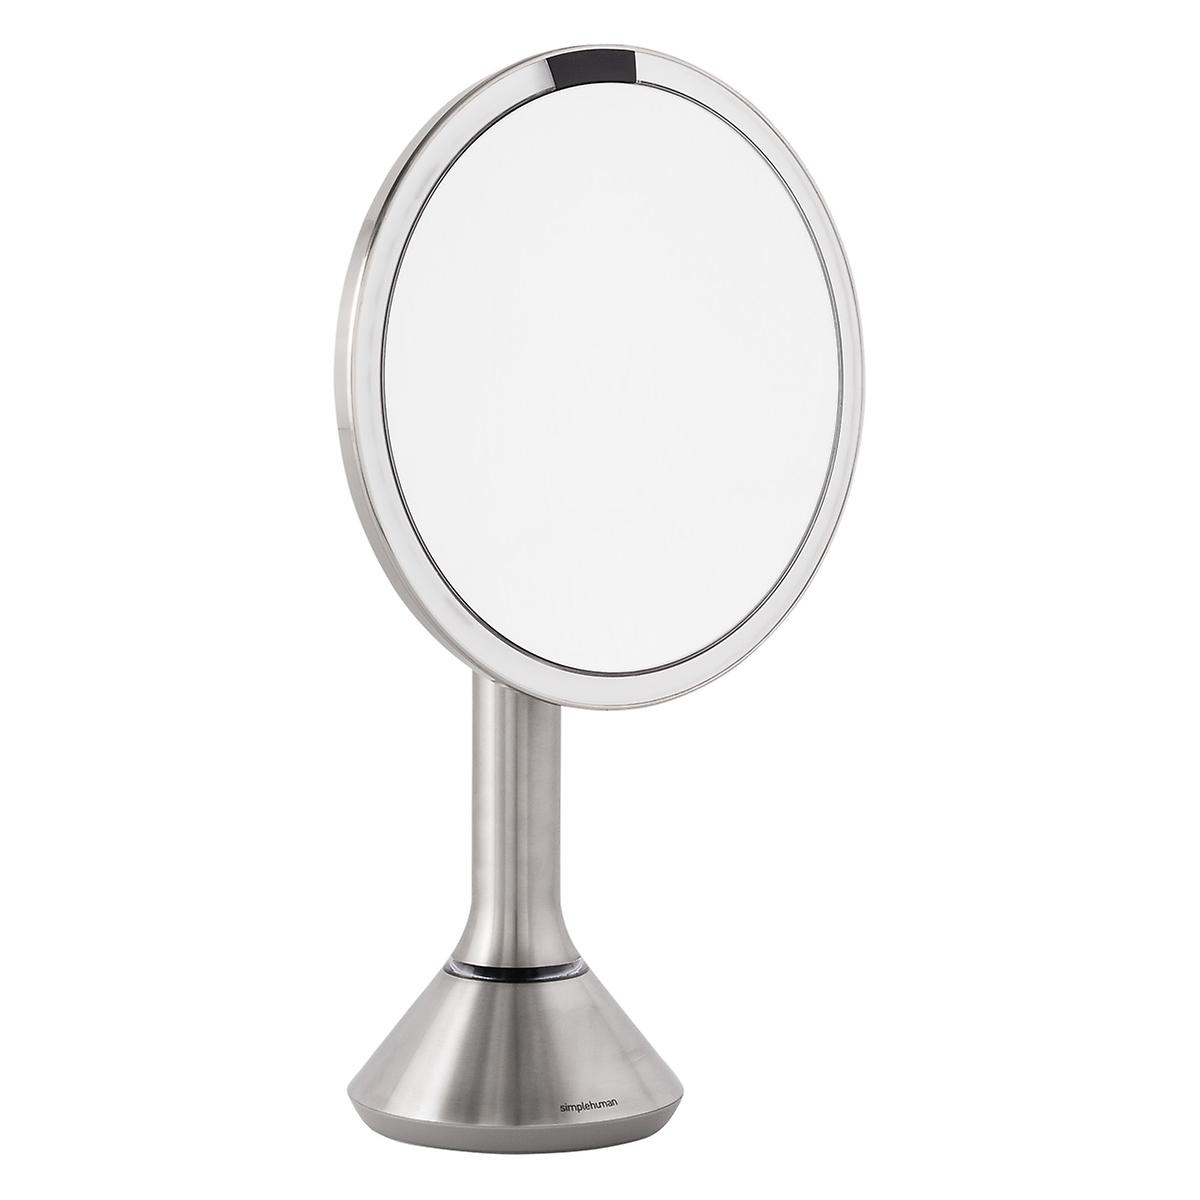 simplehuman Stainless Steel 5X Telescoping Sensor Mirror